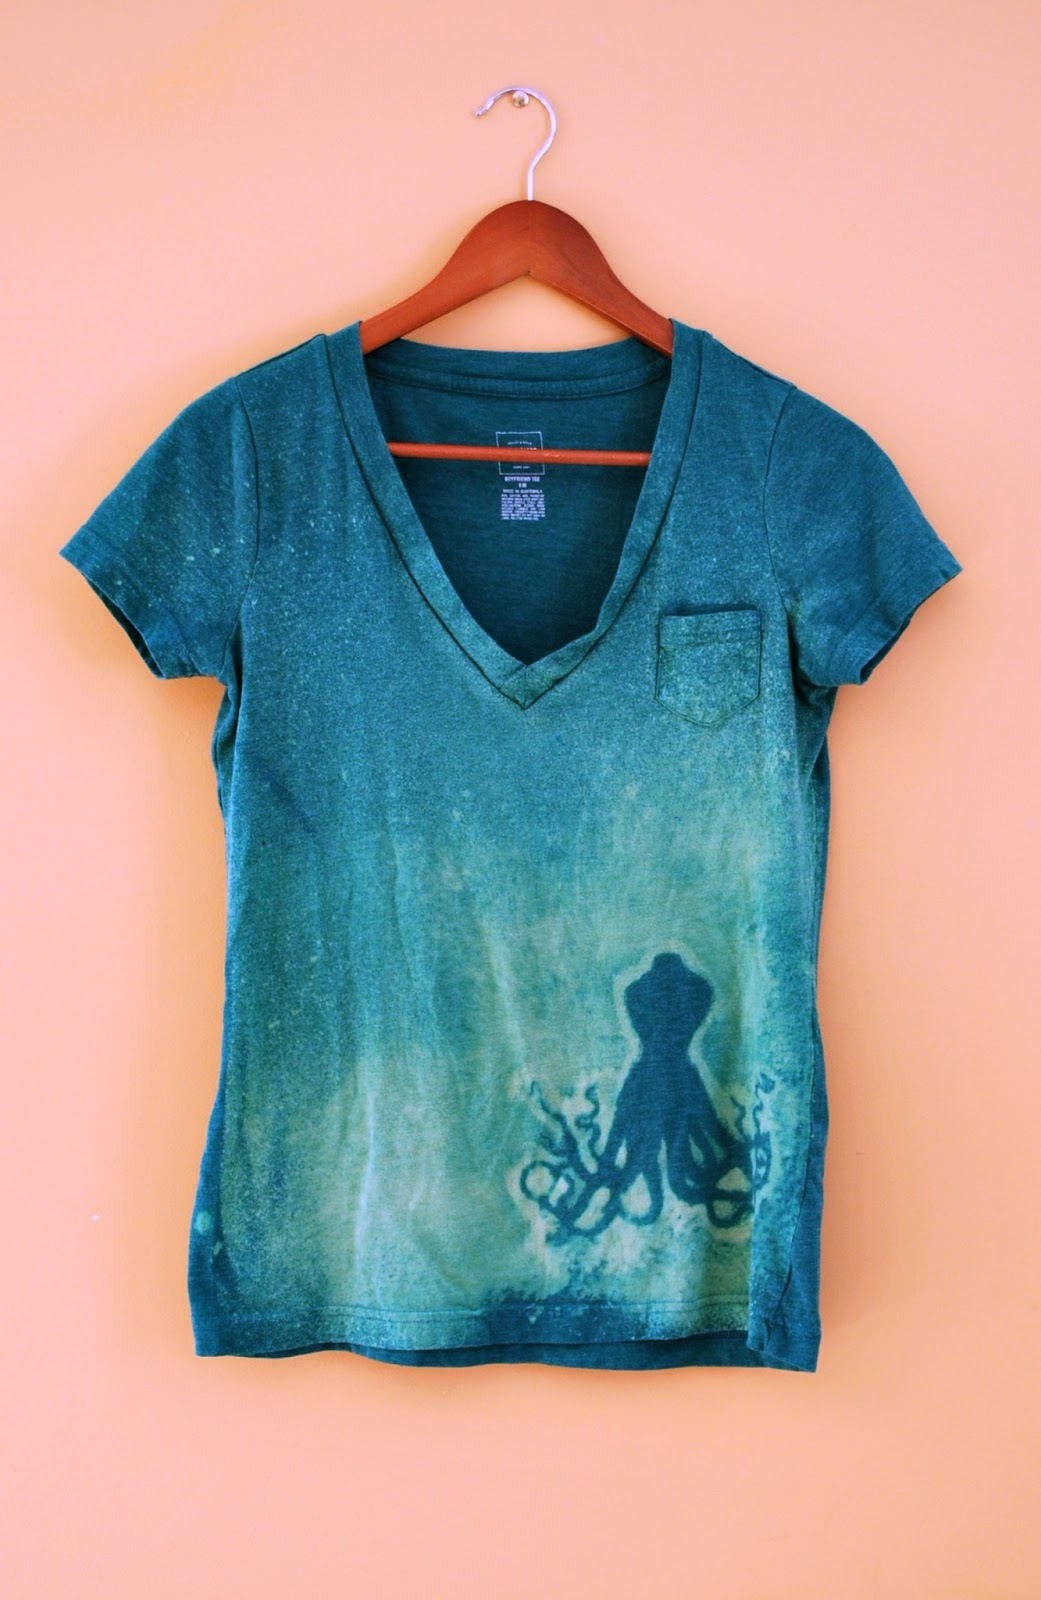 Lucille 39 s diy bleached design shirt for How to bleach designs into shirts